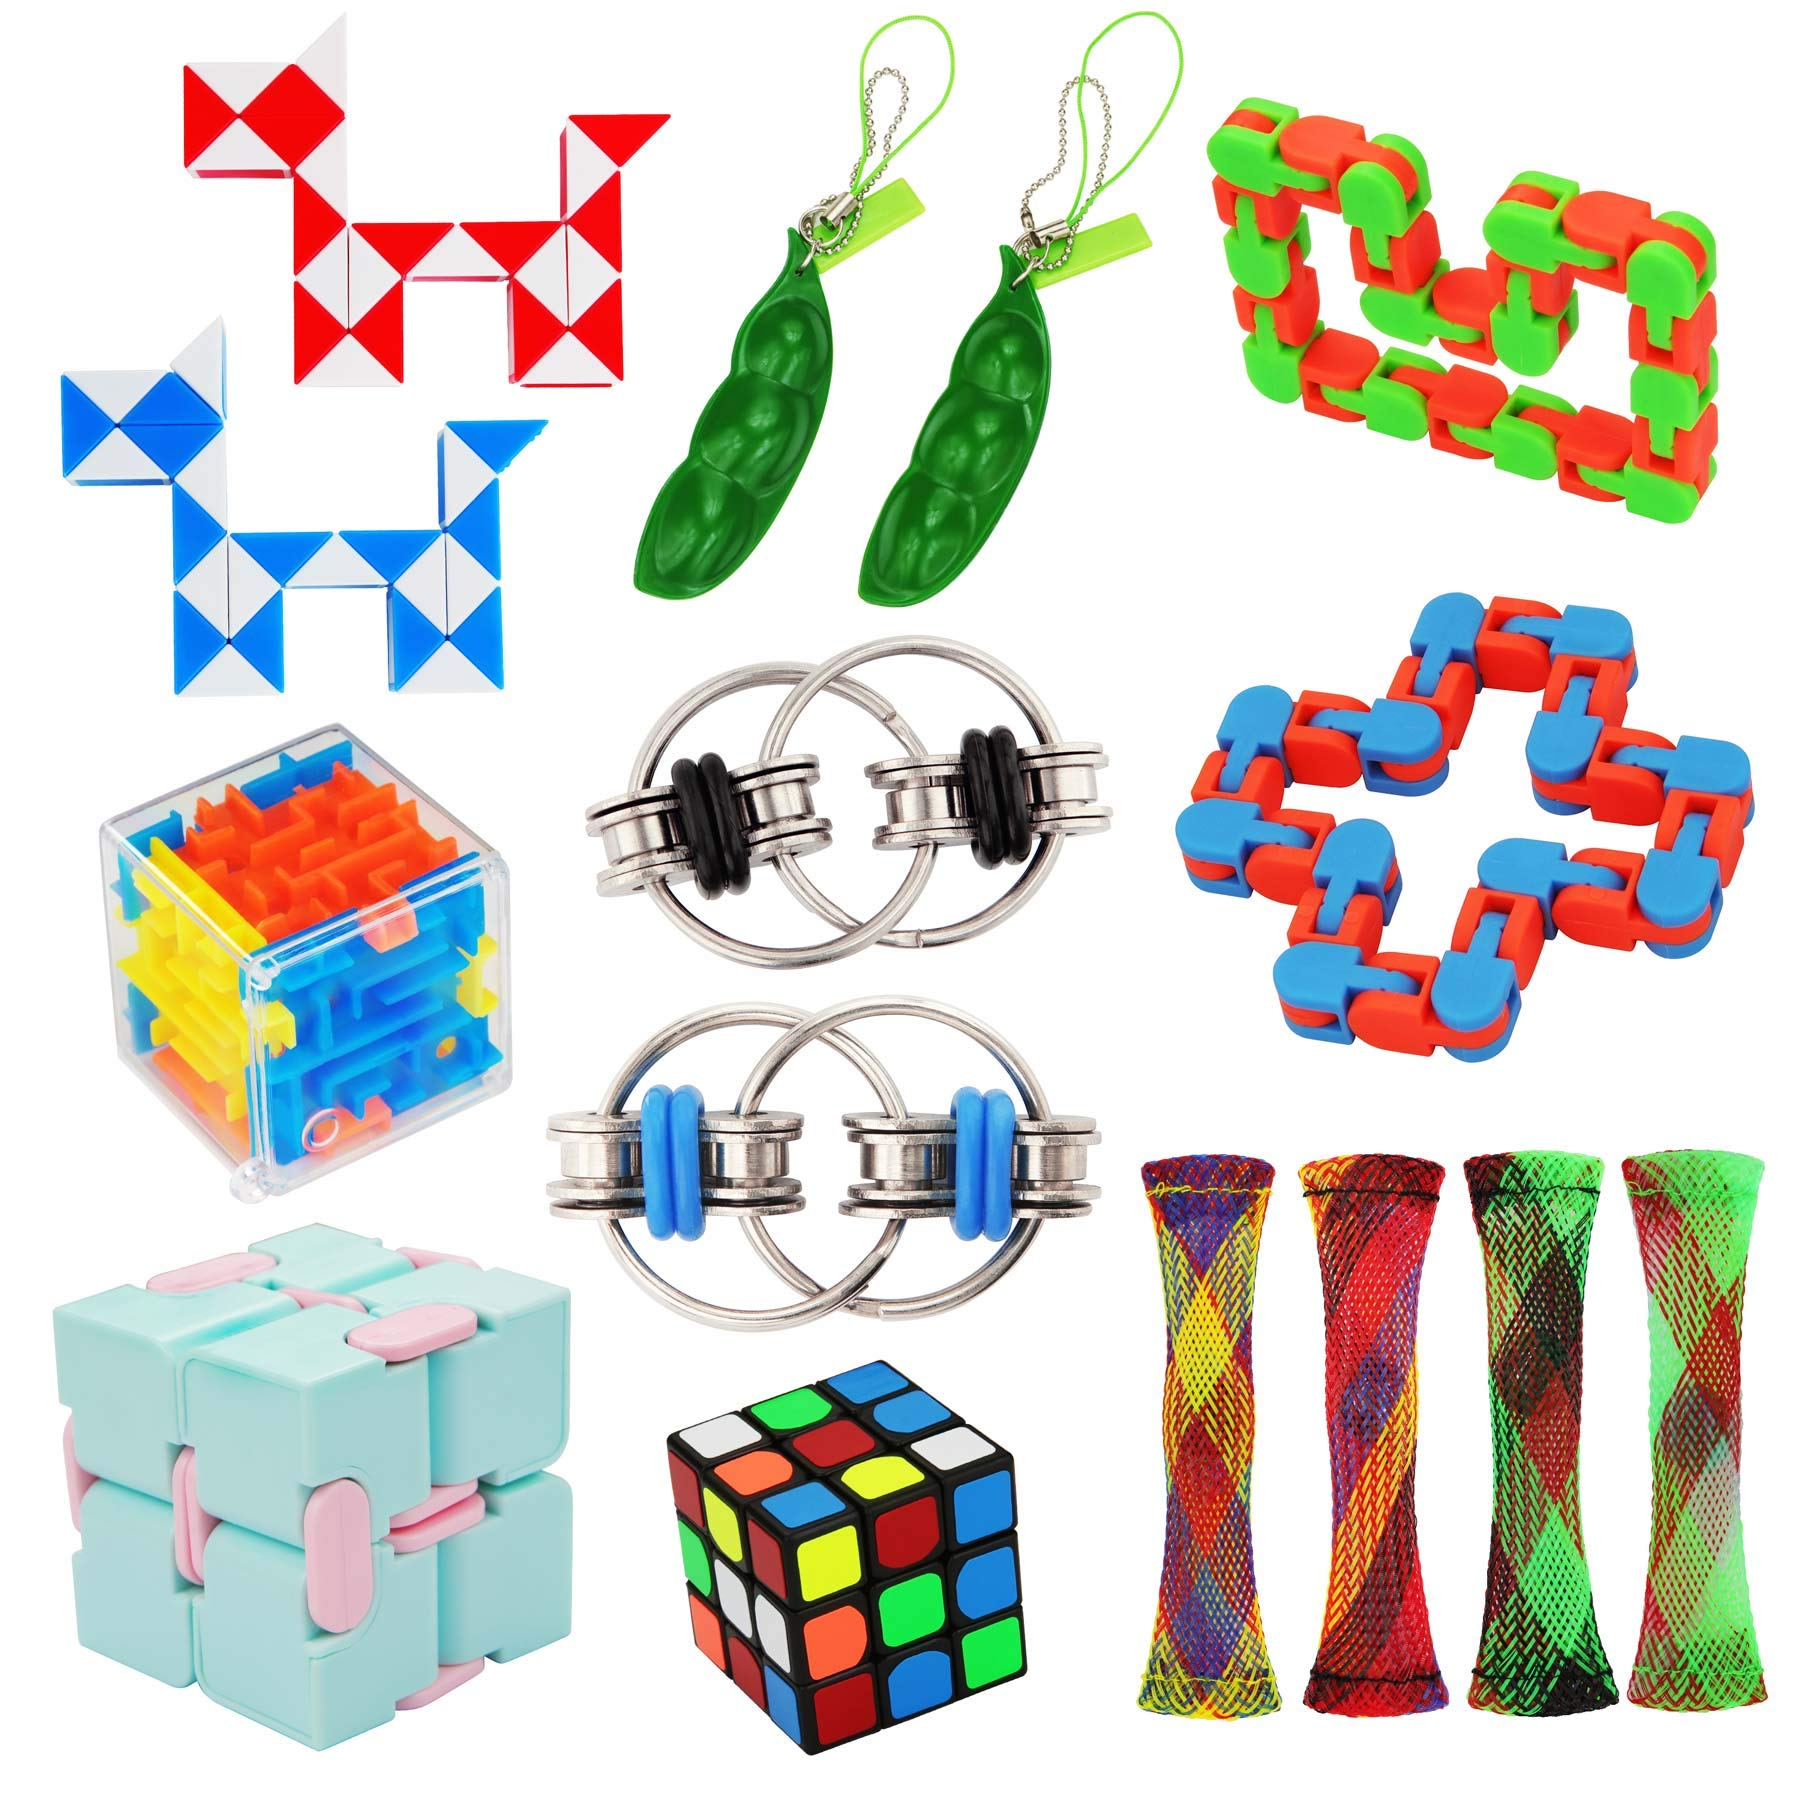 15 Pack Fidget Toy Chain Marble Fidget Keychain Fidget Toys Snake Cube Toys Infinity Cube Toy Squeeze-a-Bean Keyring Pea Keychain Soybean Toys Gift